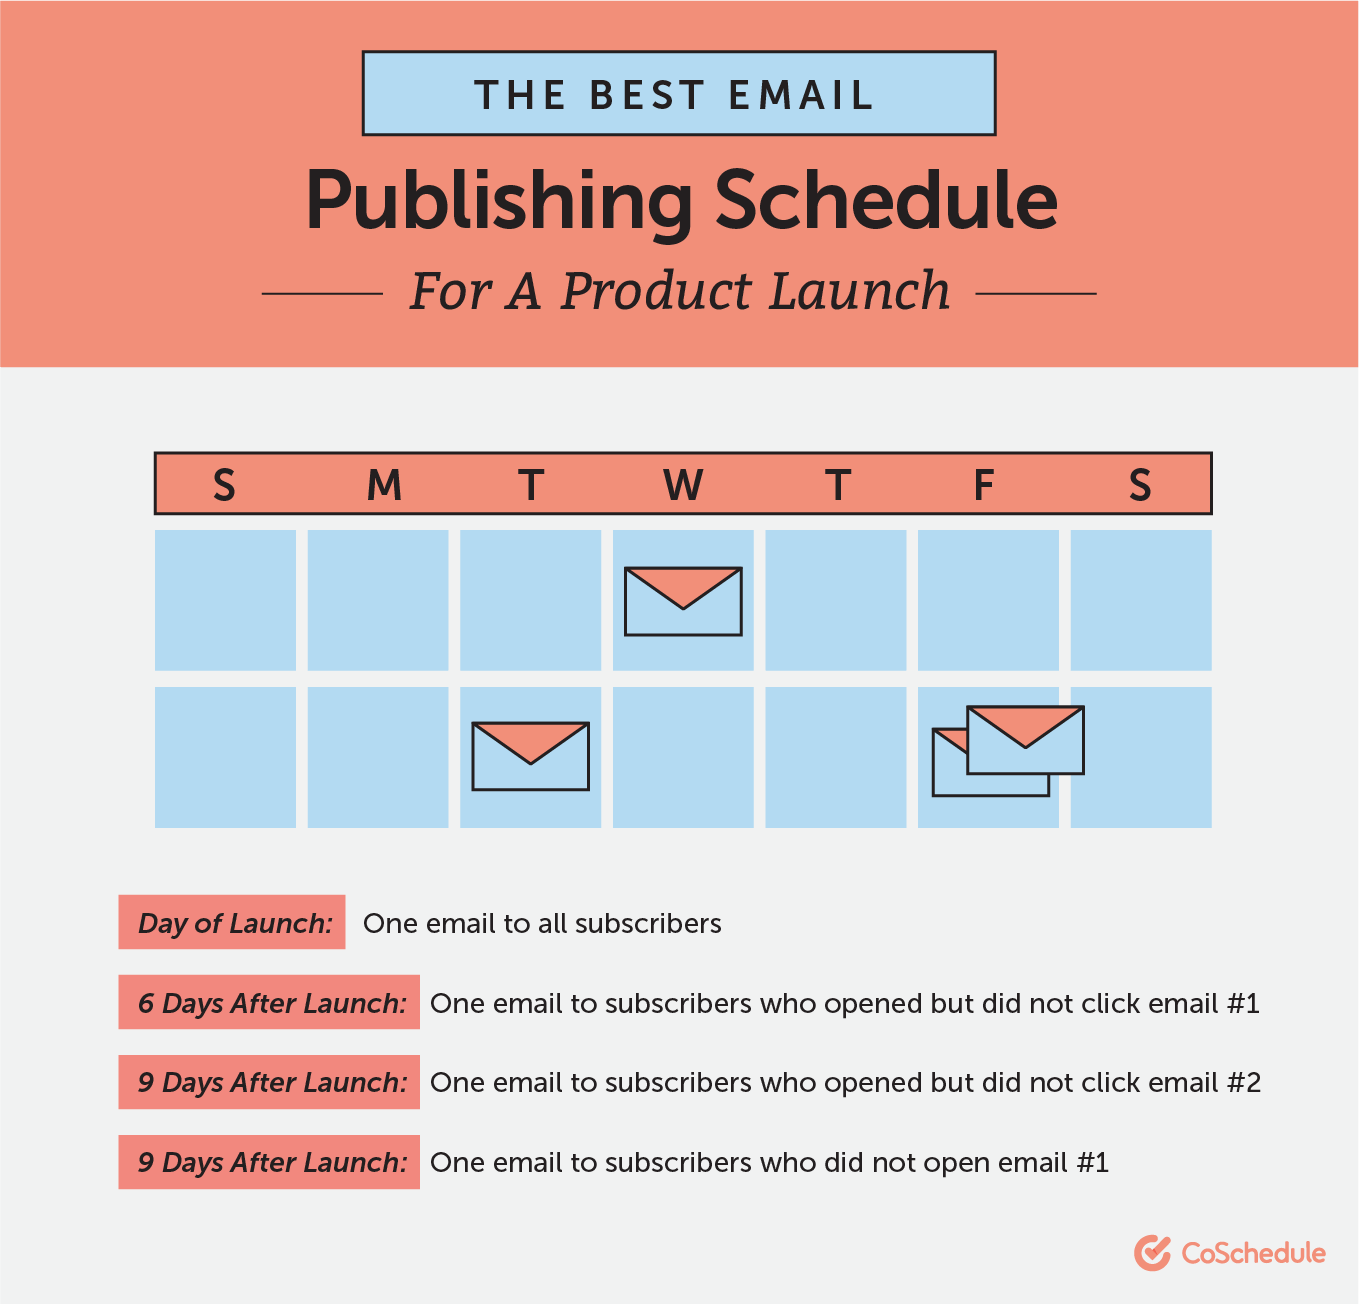 Best email publishing schedule for a product launch